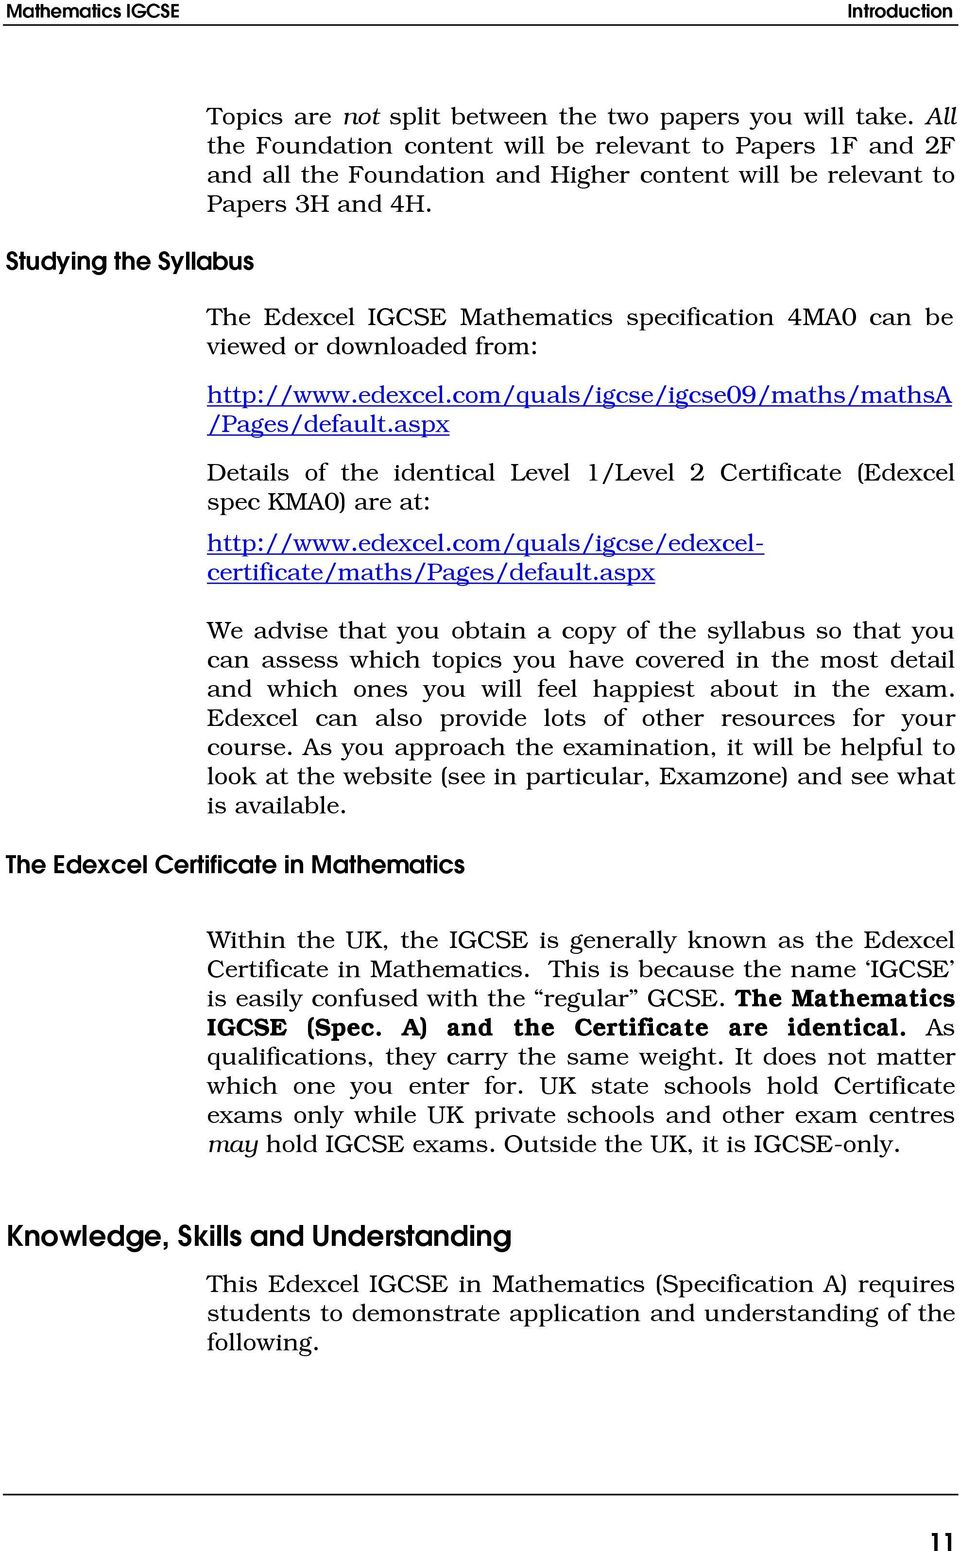 The Edexcel IGCSE Mathematics specification 4MA0 can be viewed or  downloaded from: http:/